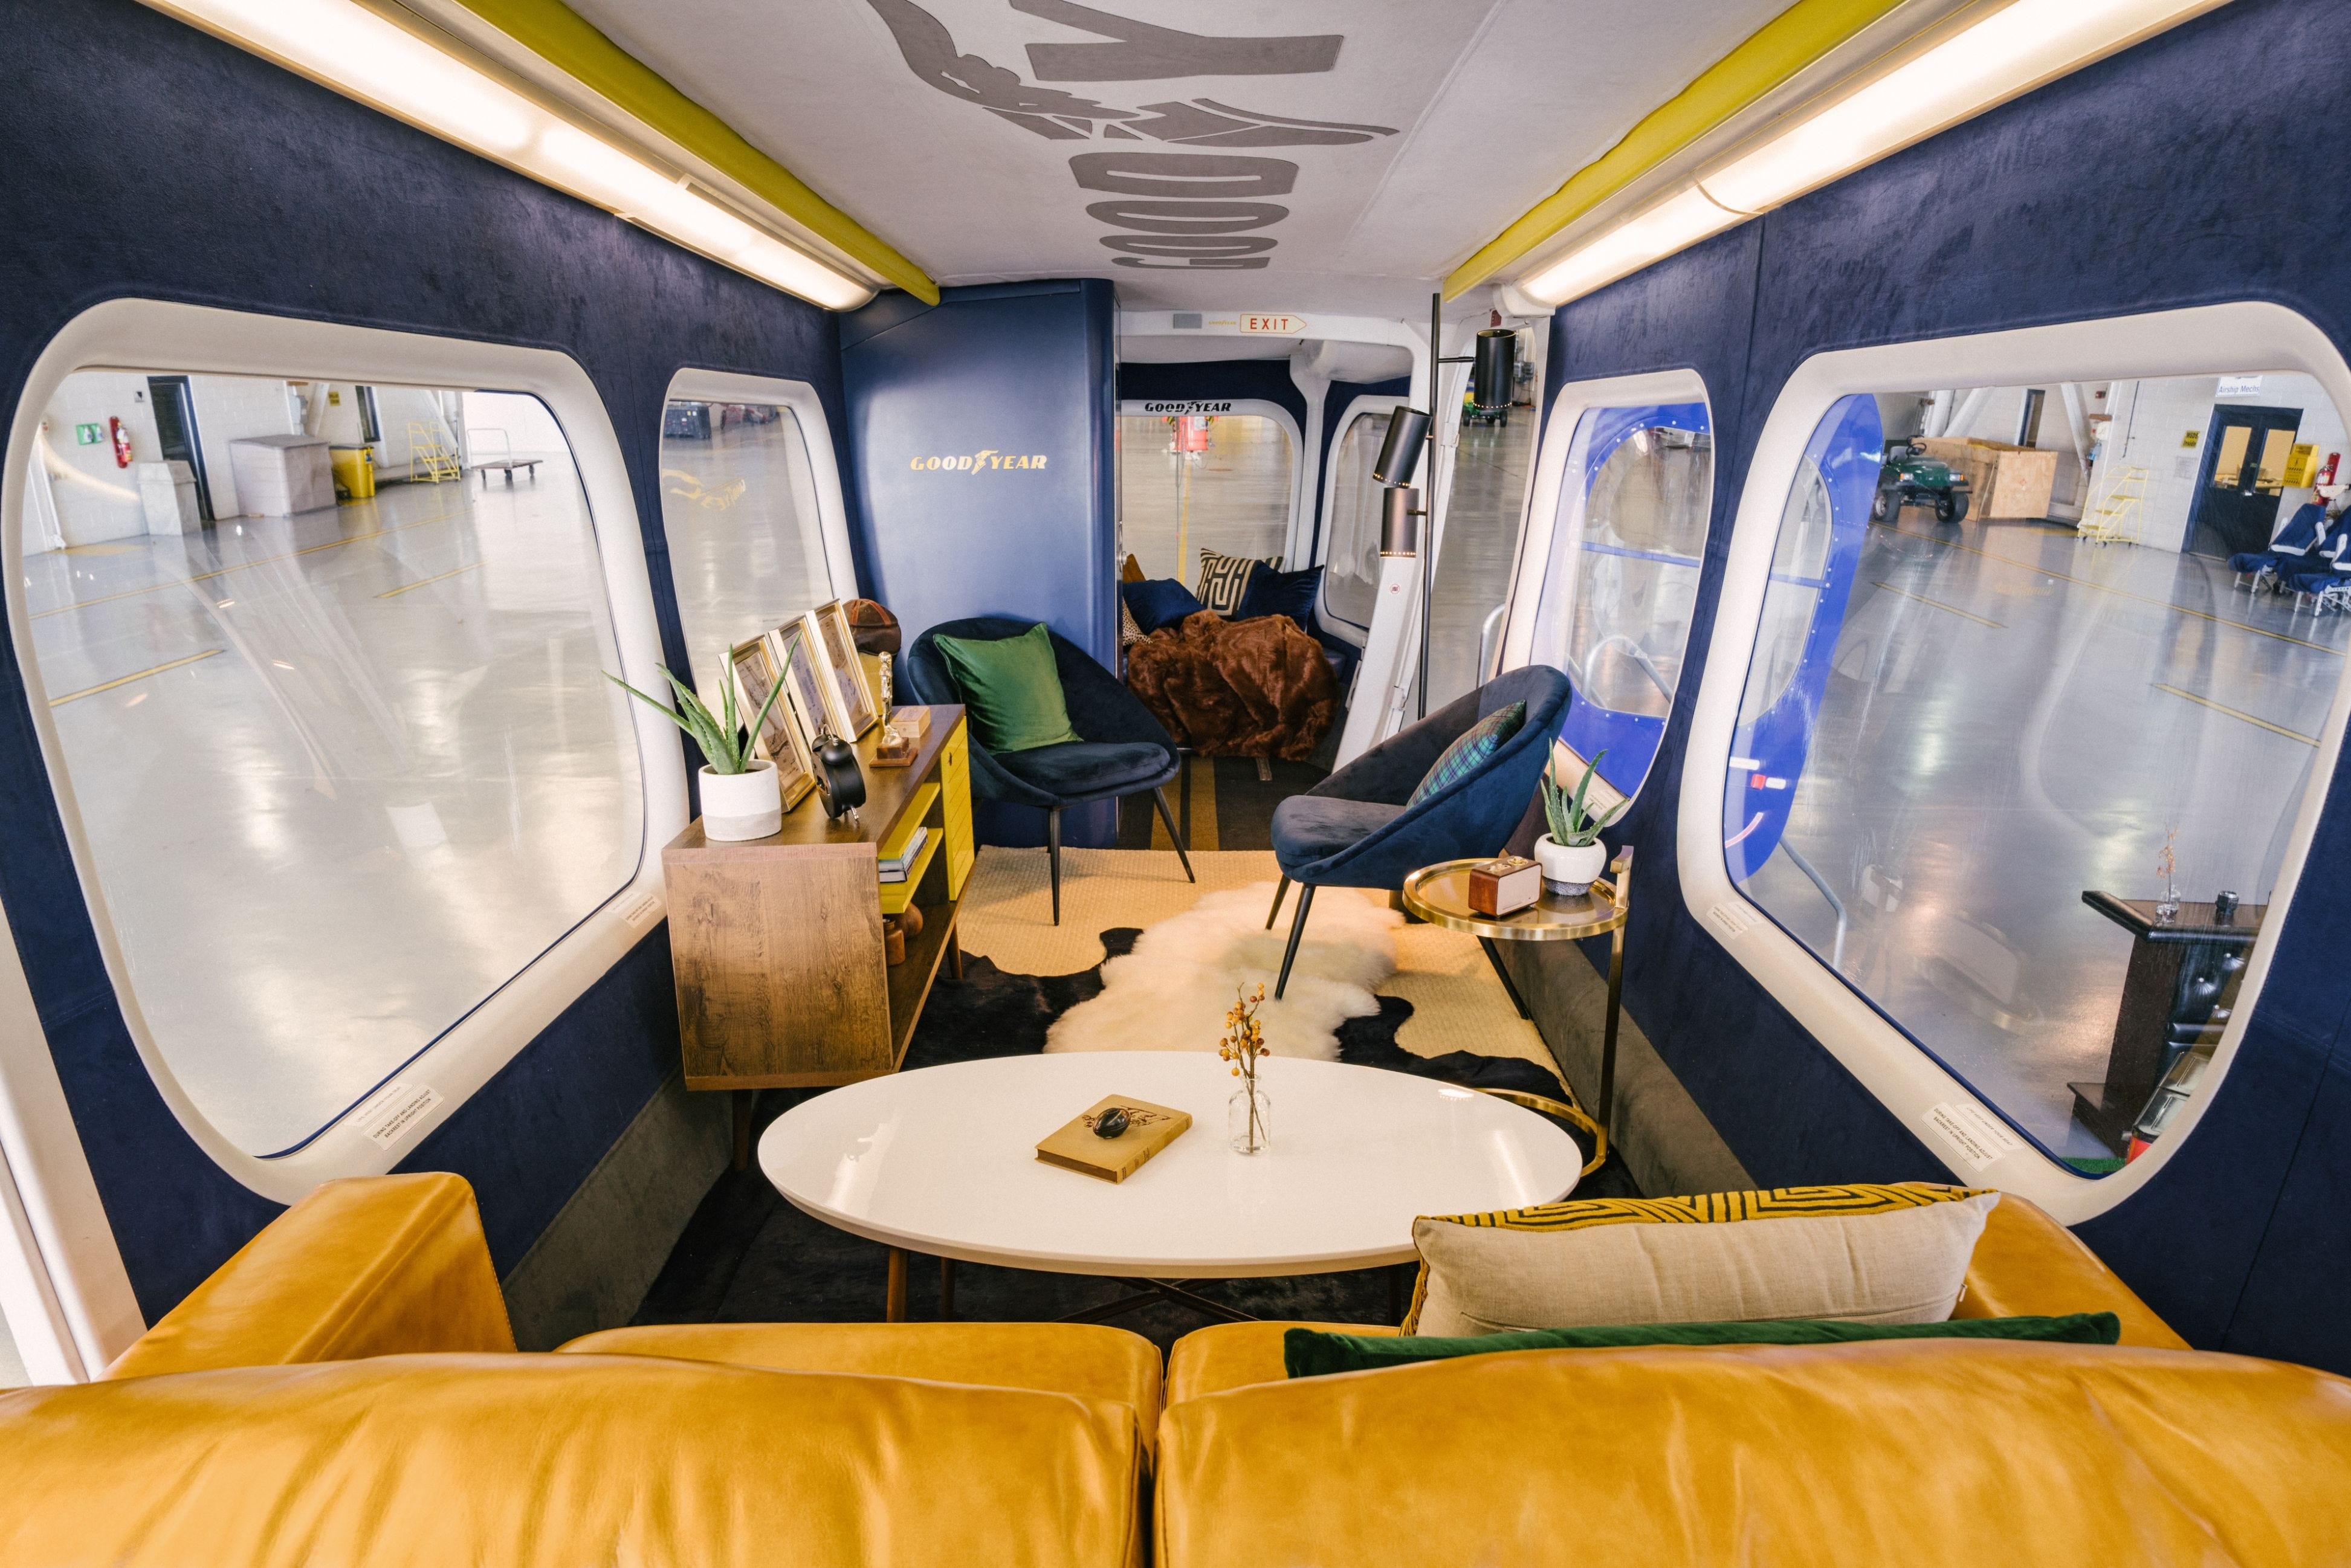 Want to see the inside of the Goodyear Blimp? Now you can even sleep in it